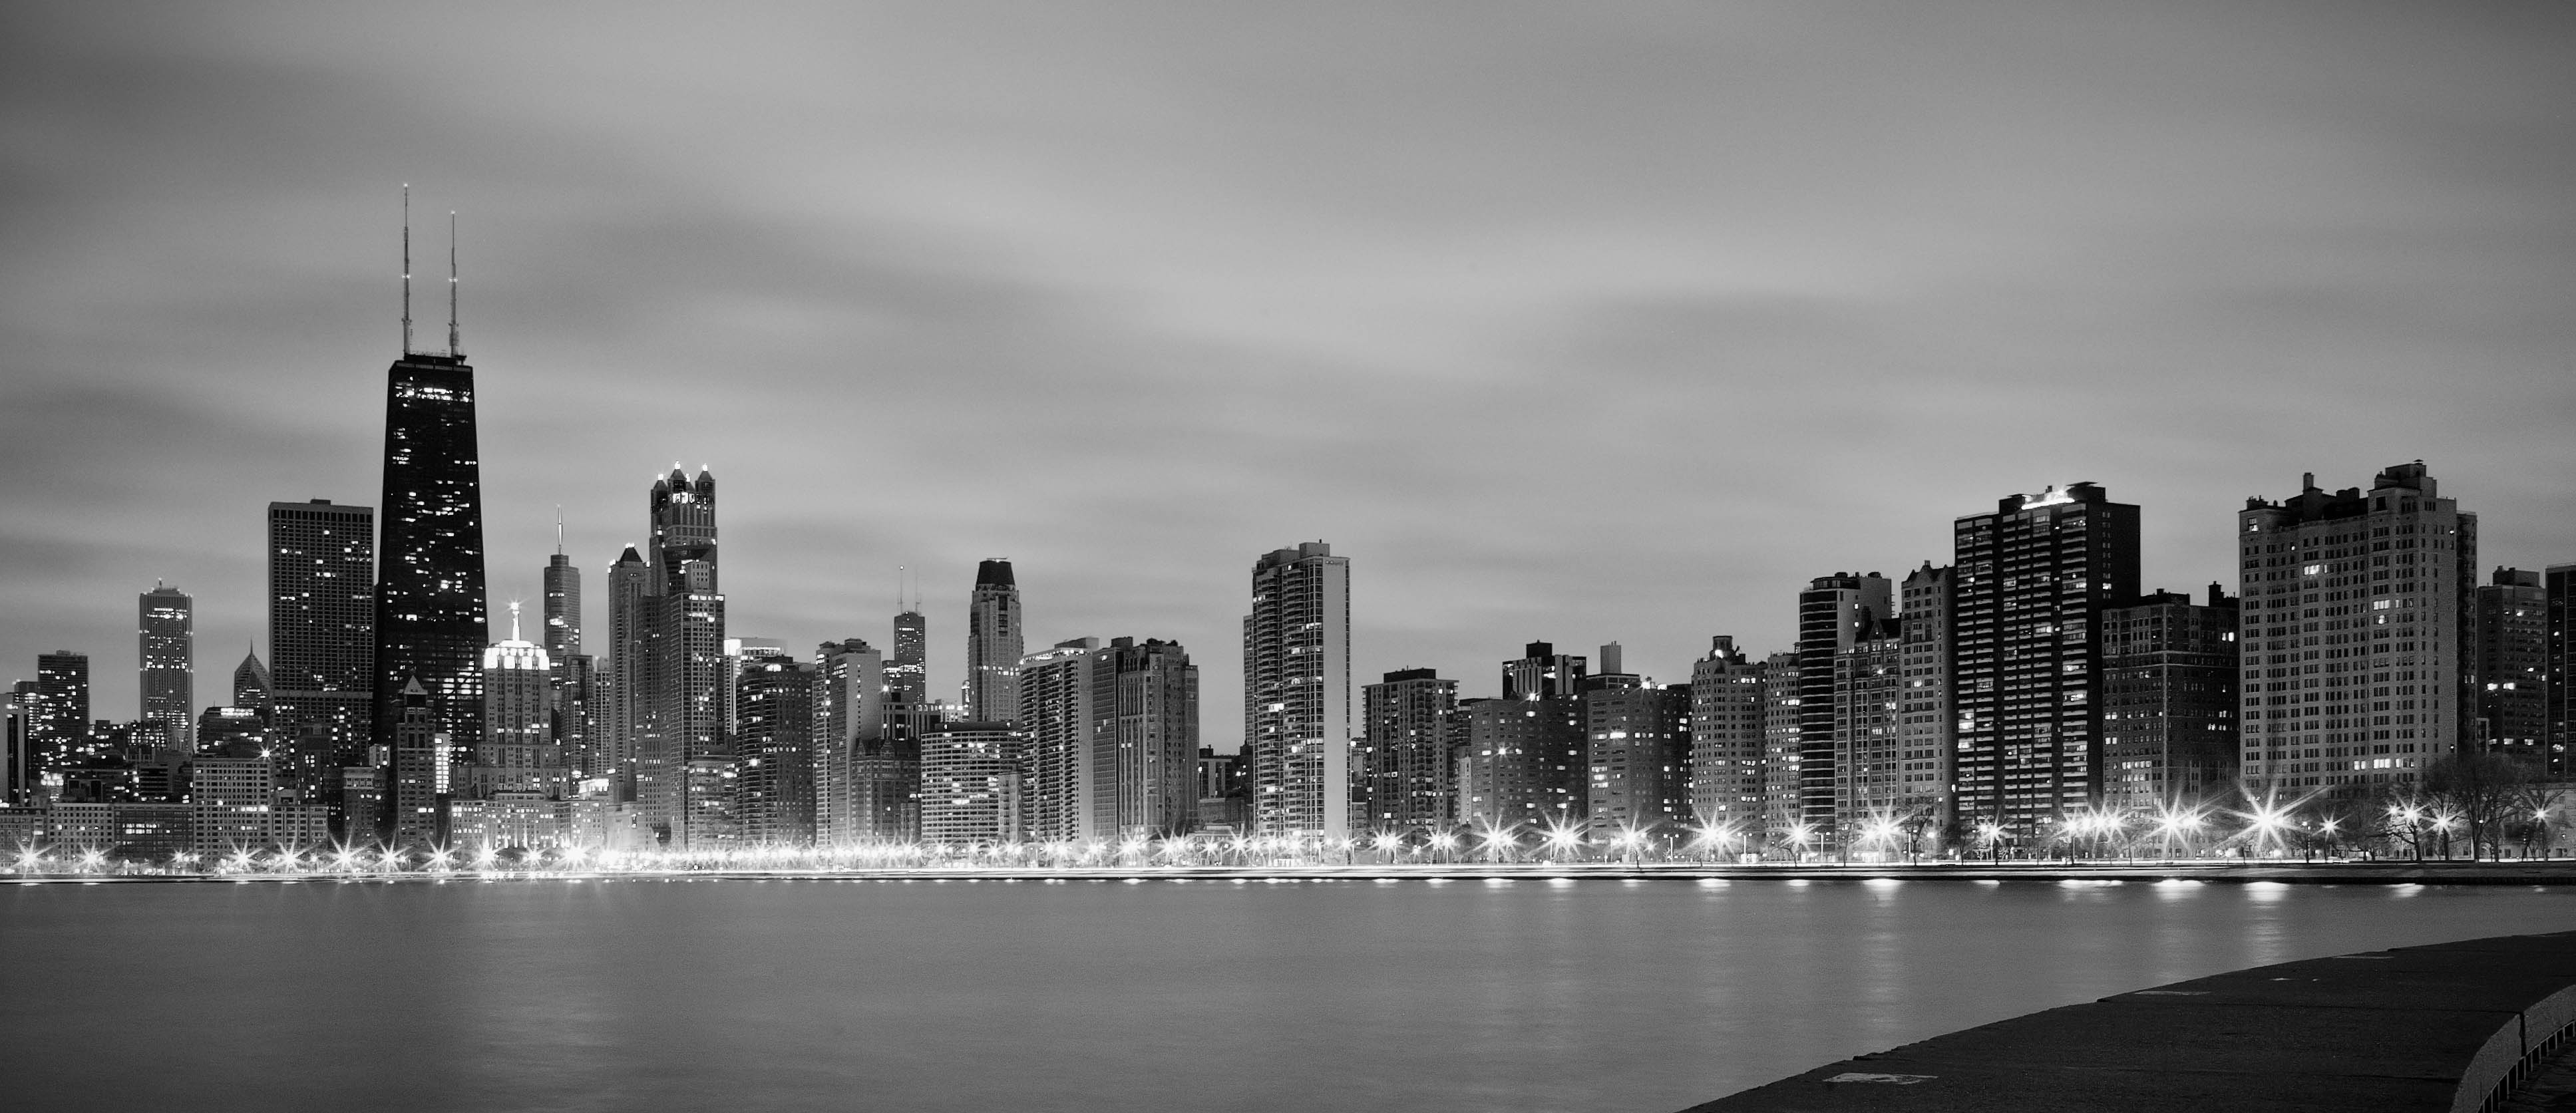 free chicago black and white wallpaper picture « long wallpapers